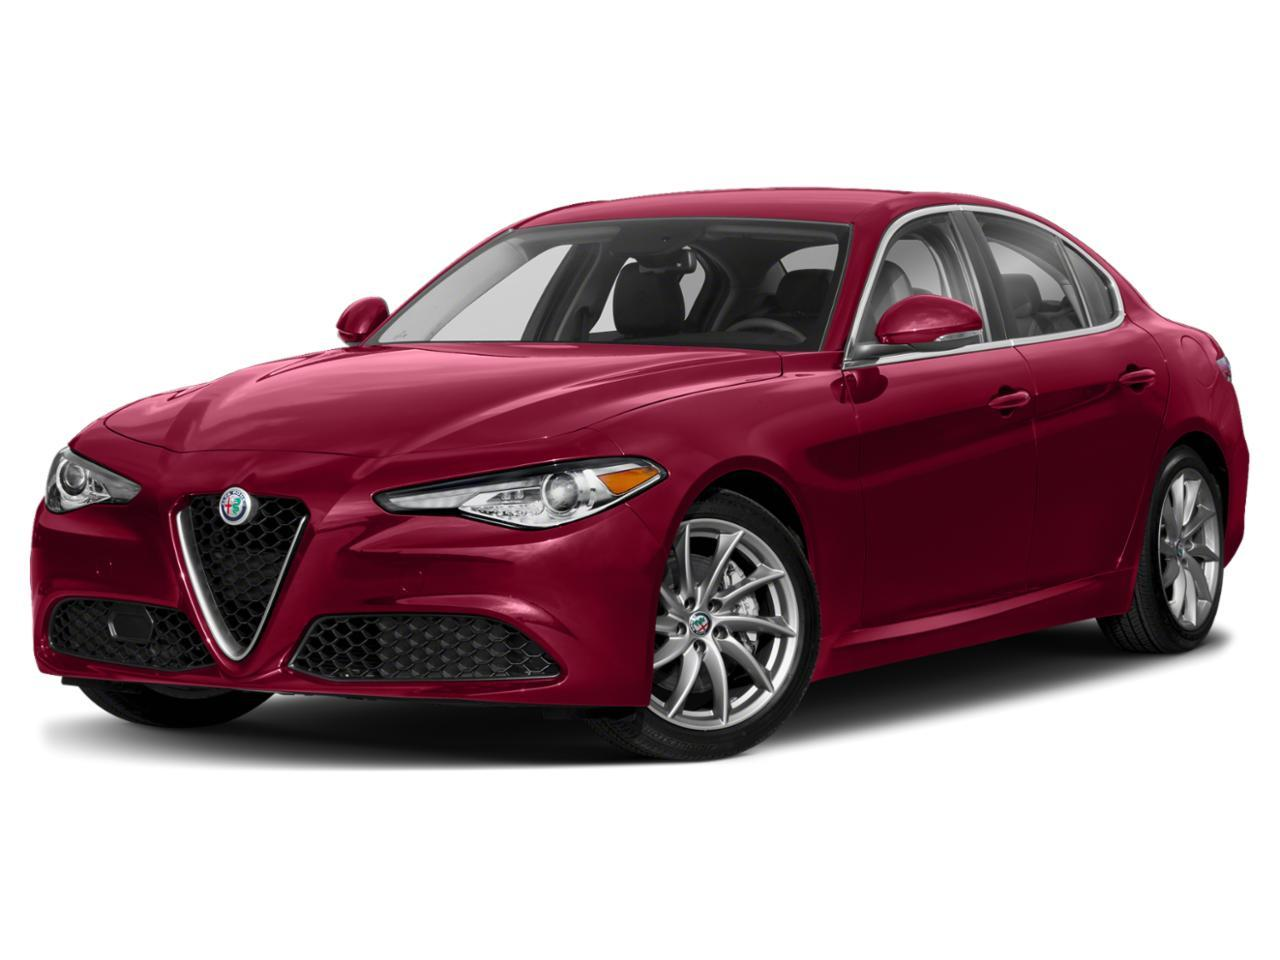 2019 Alfa Romeo Giulia Vehicle Photo in Willow Grove, PA 19090